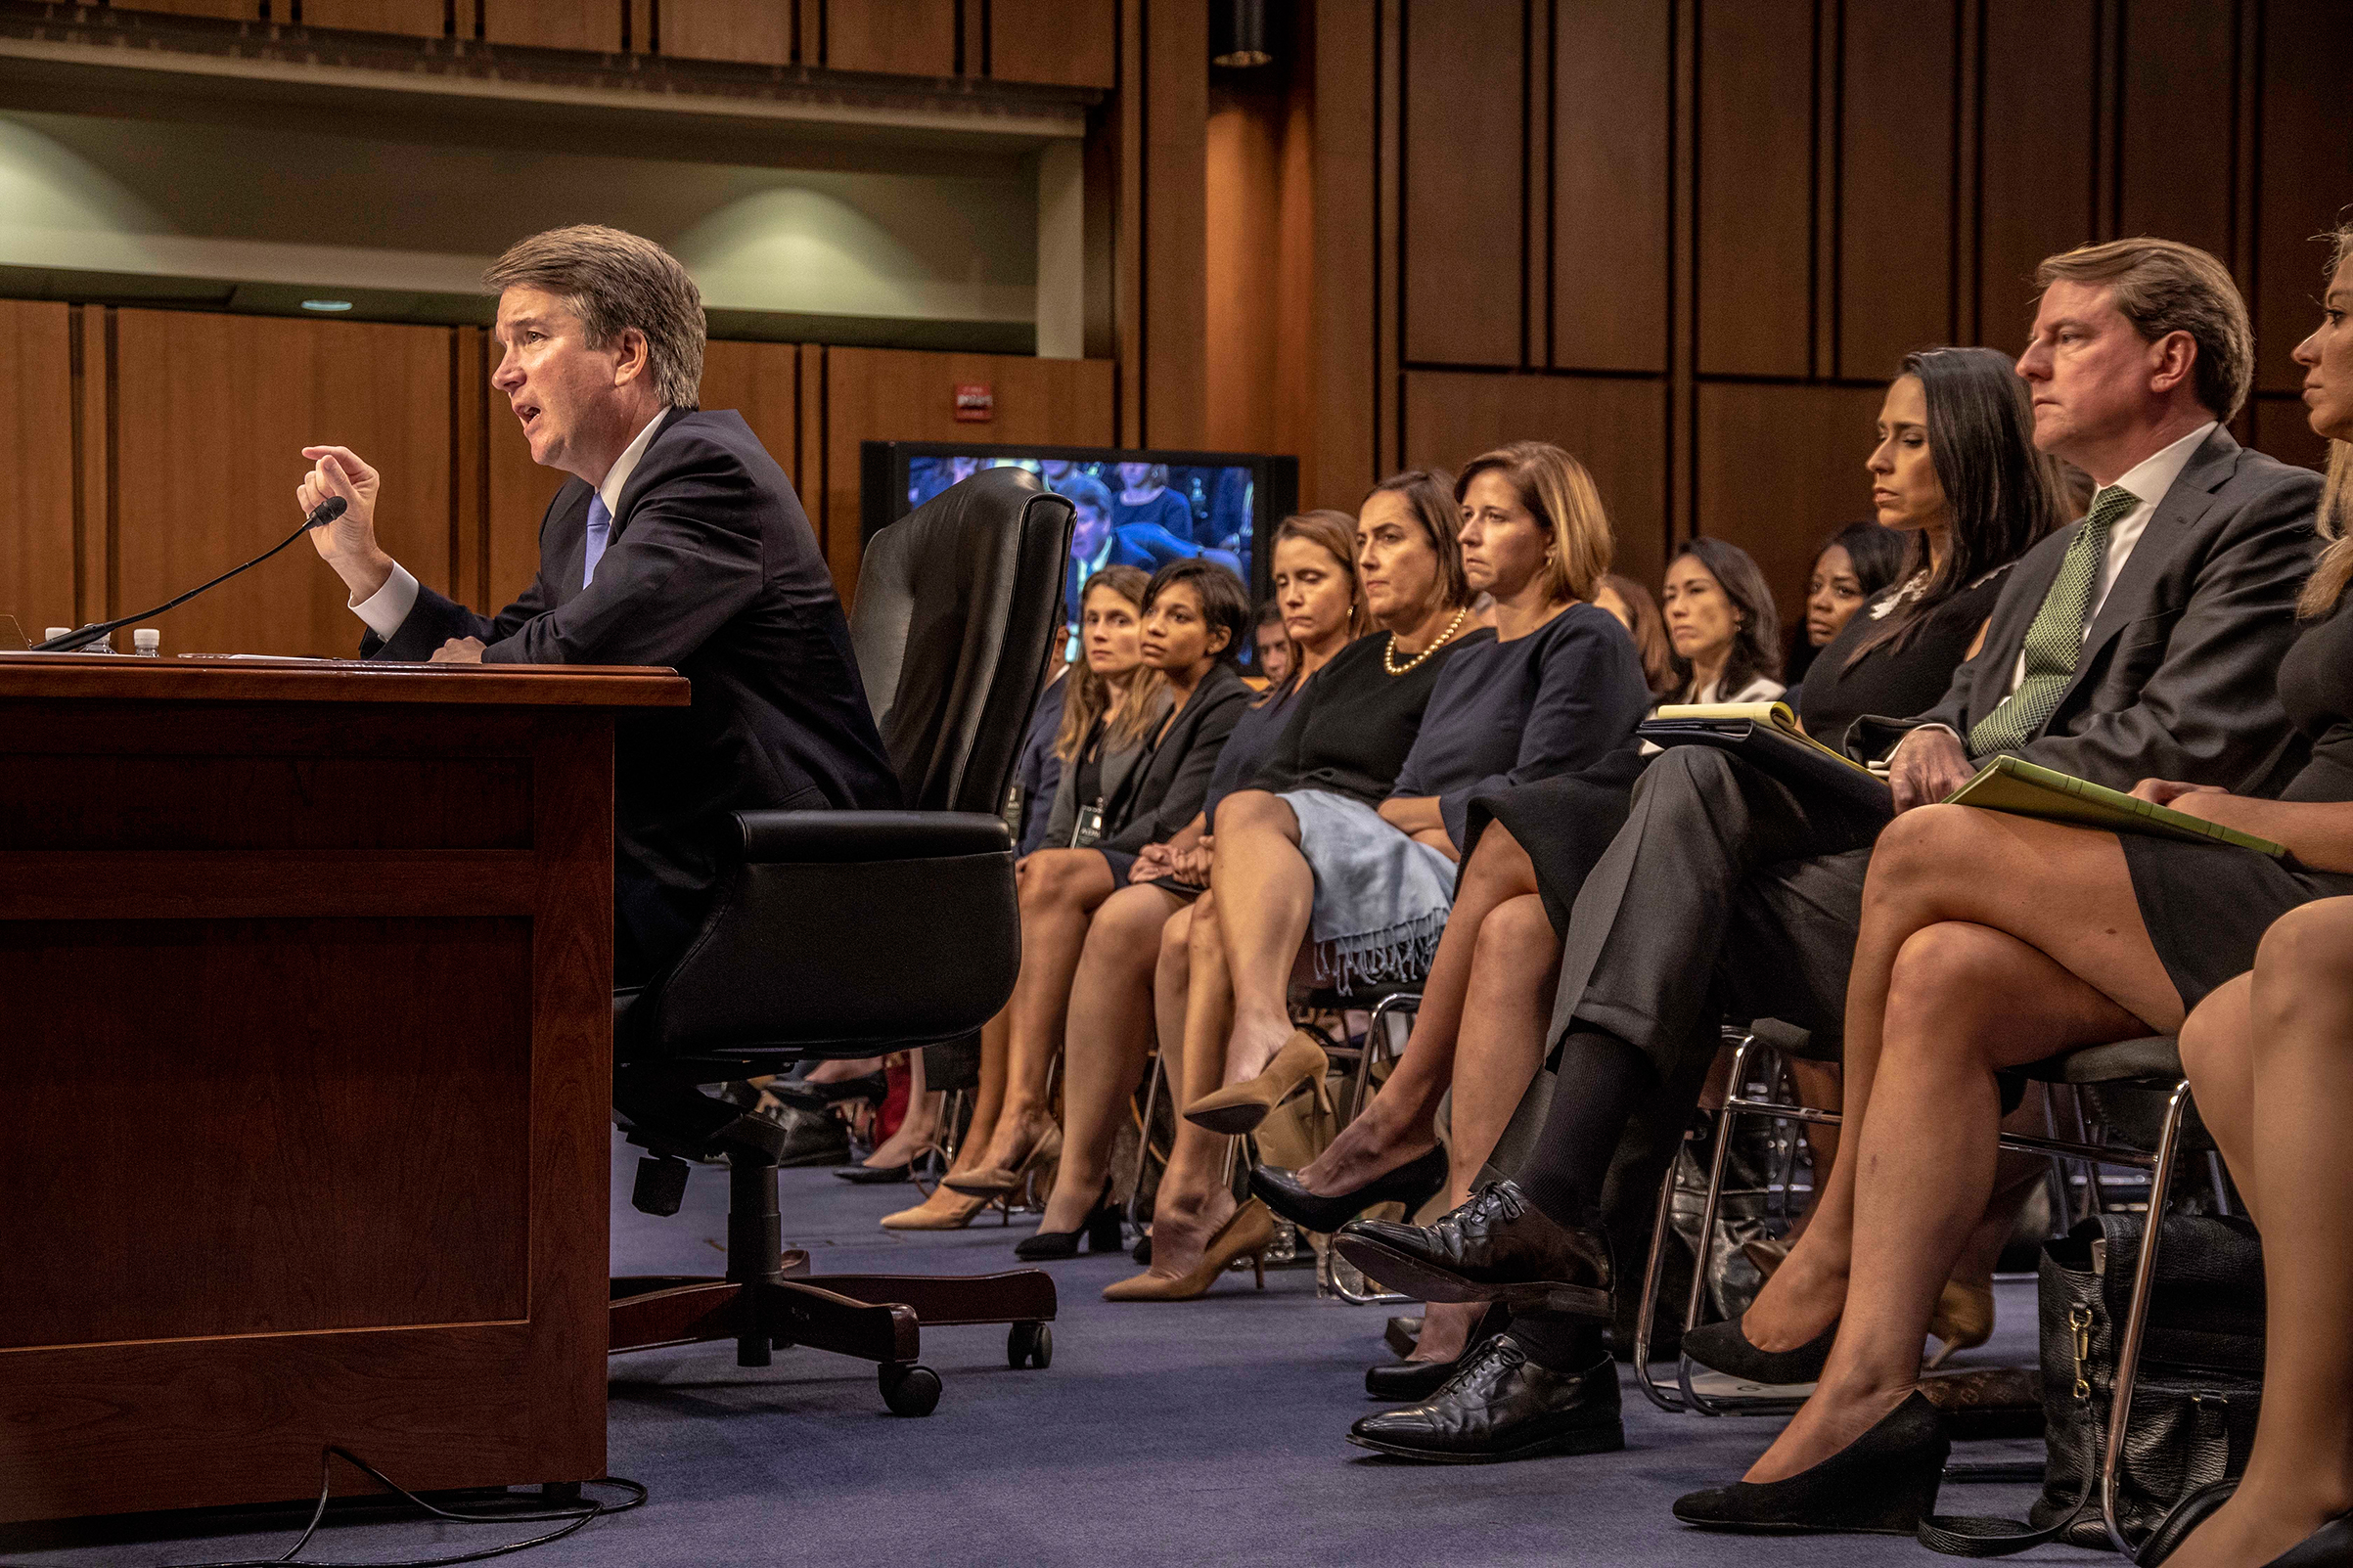 Kavanaugh answers questions from members of the Senate Judiciary Committee during his confirmation hearings.